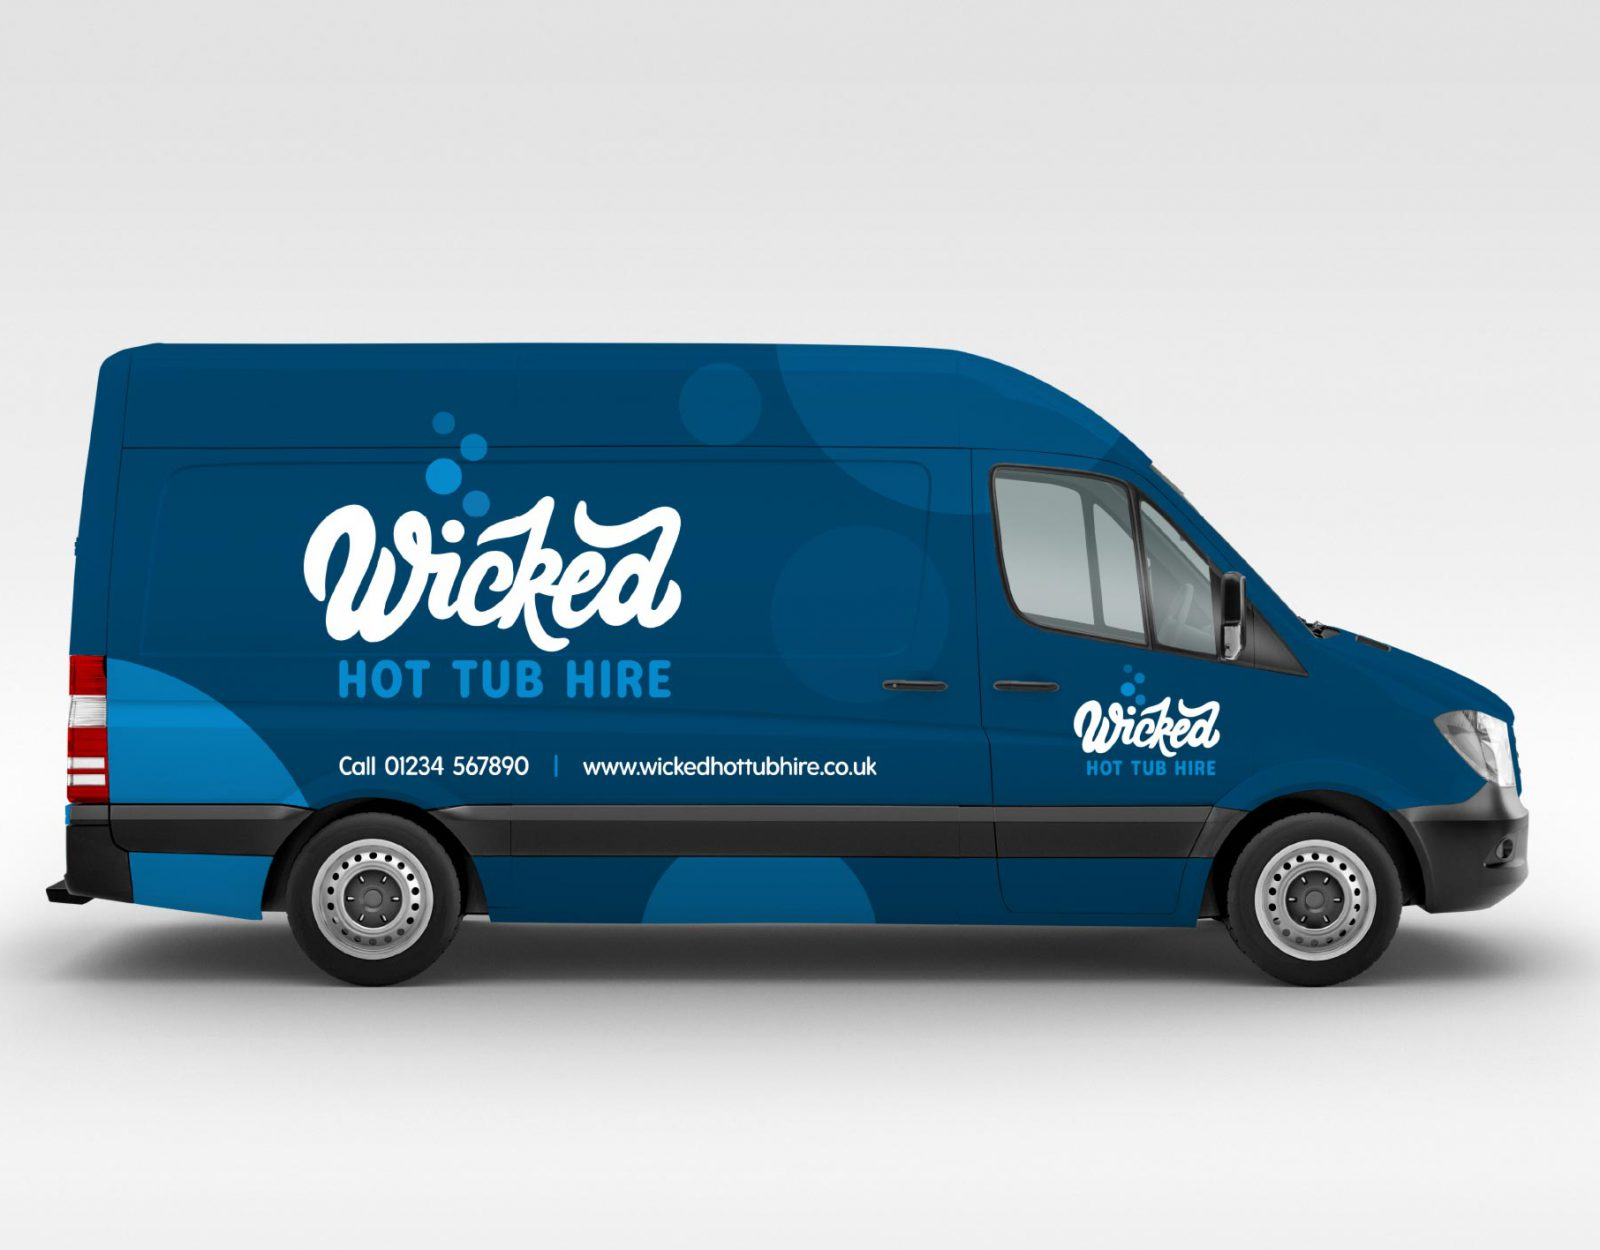 Wicked Hot Tub Hire van livery